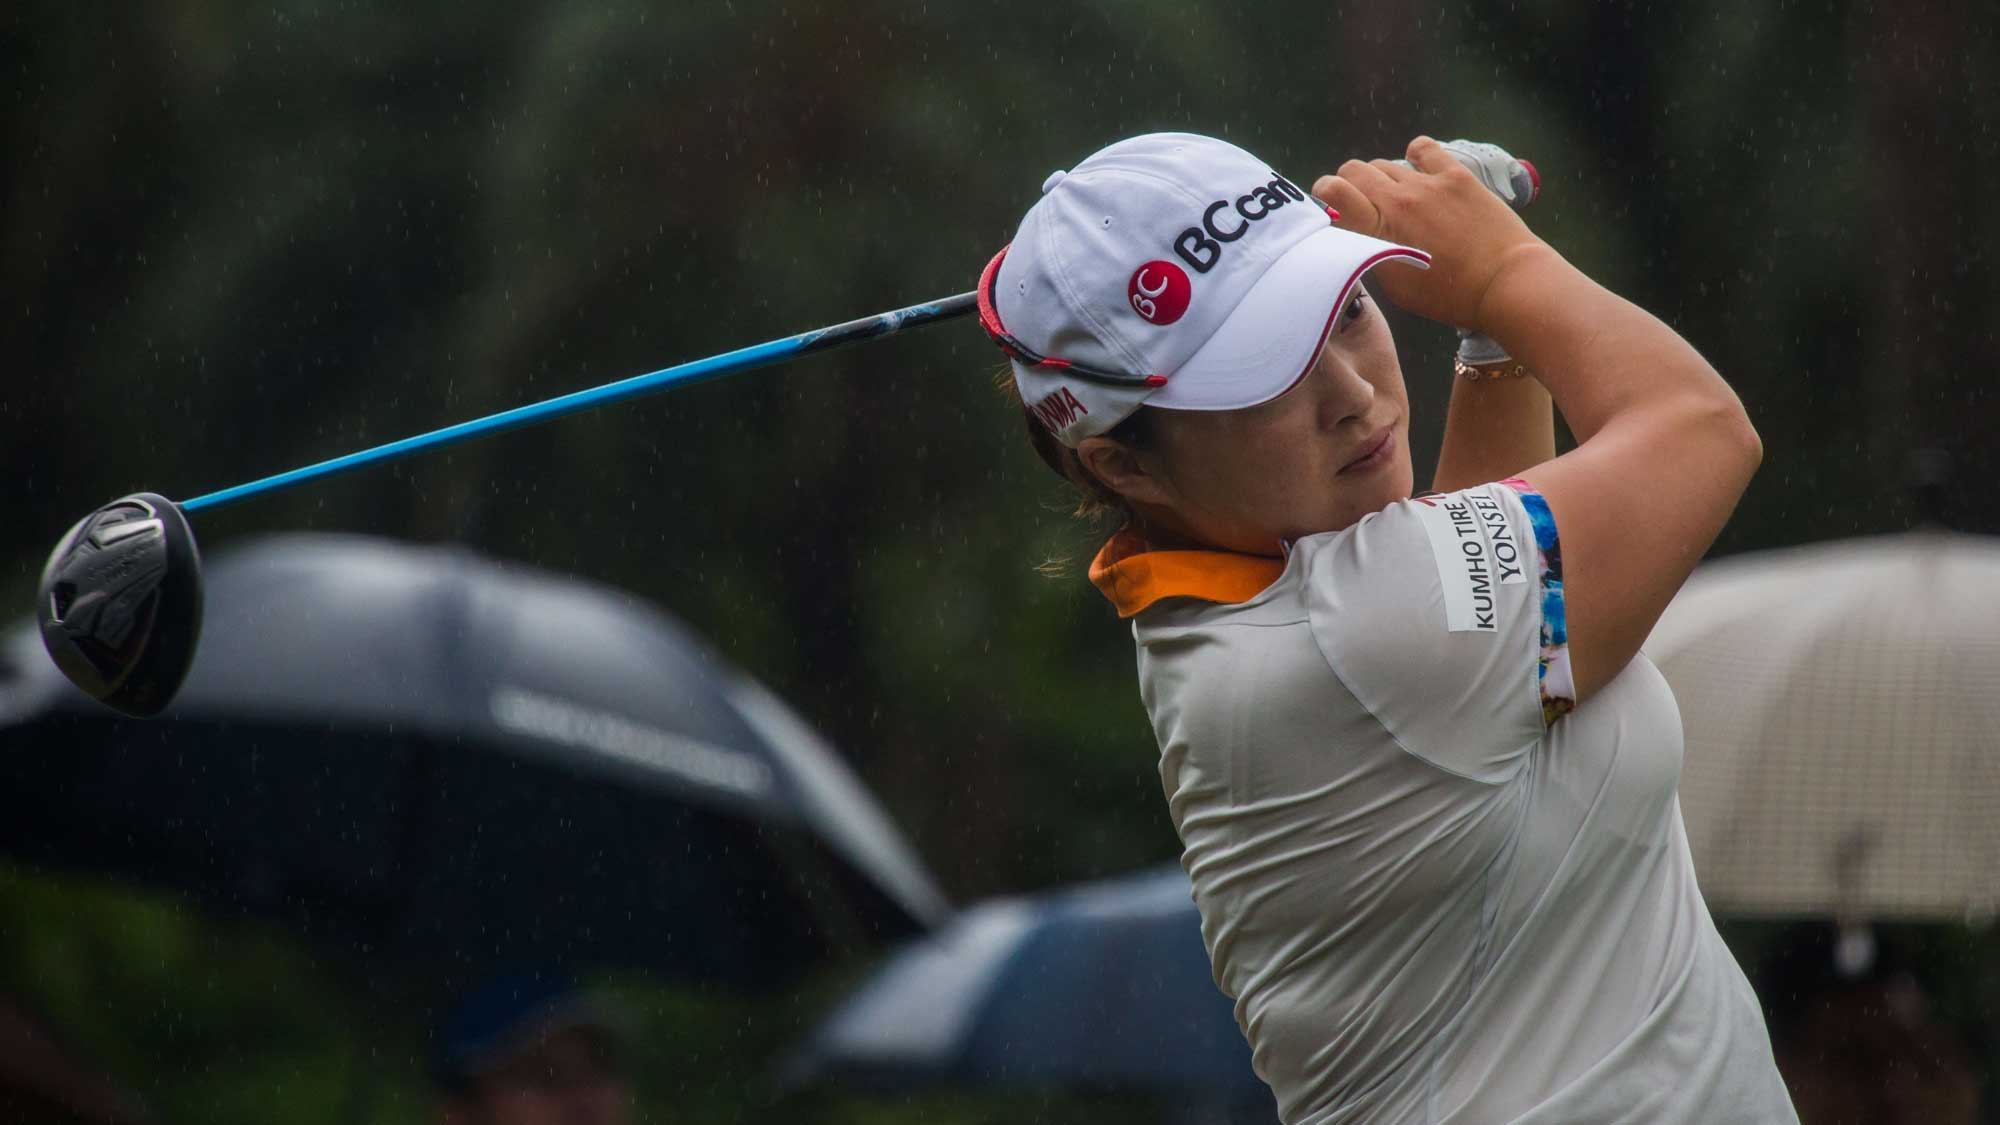 Ha Na Jang of Republic of Korea plays a shot in the Fubon Taiwan LPGA Championship